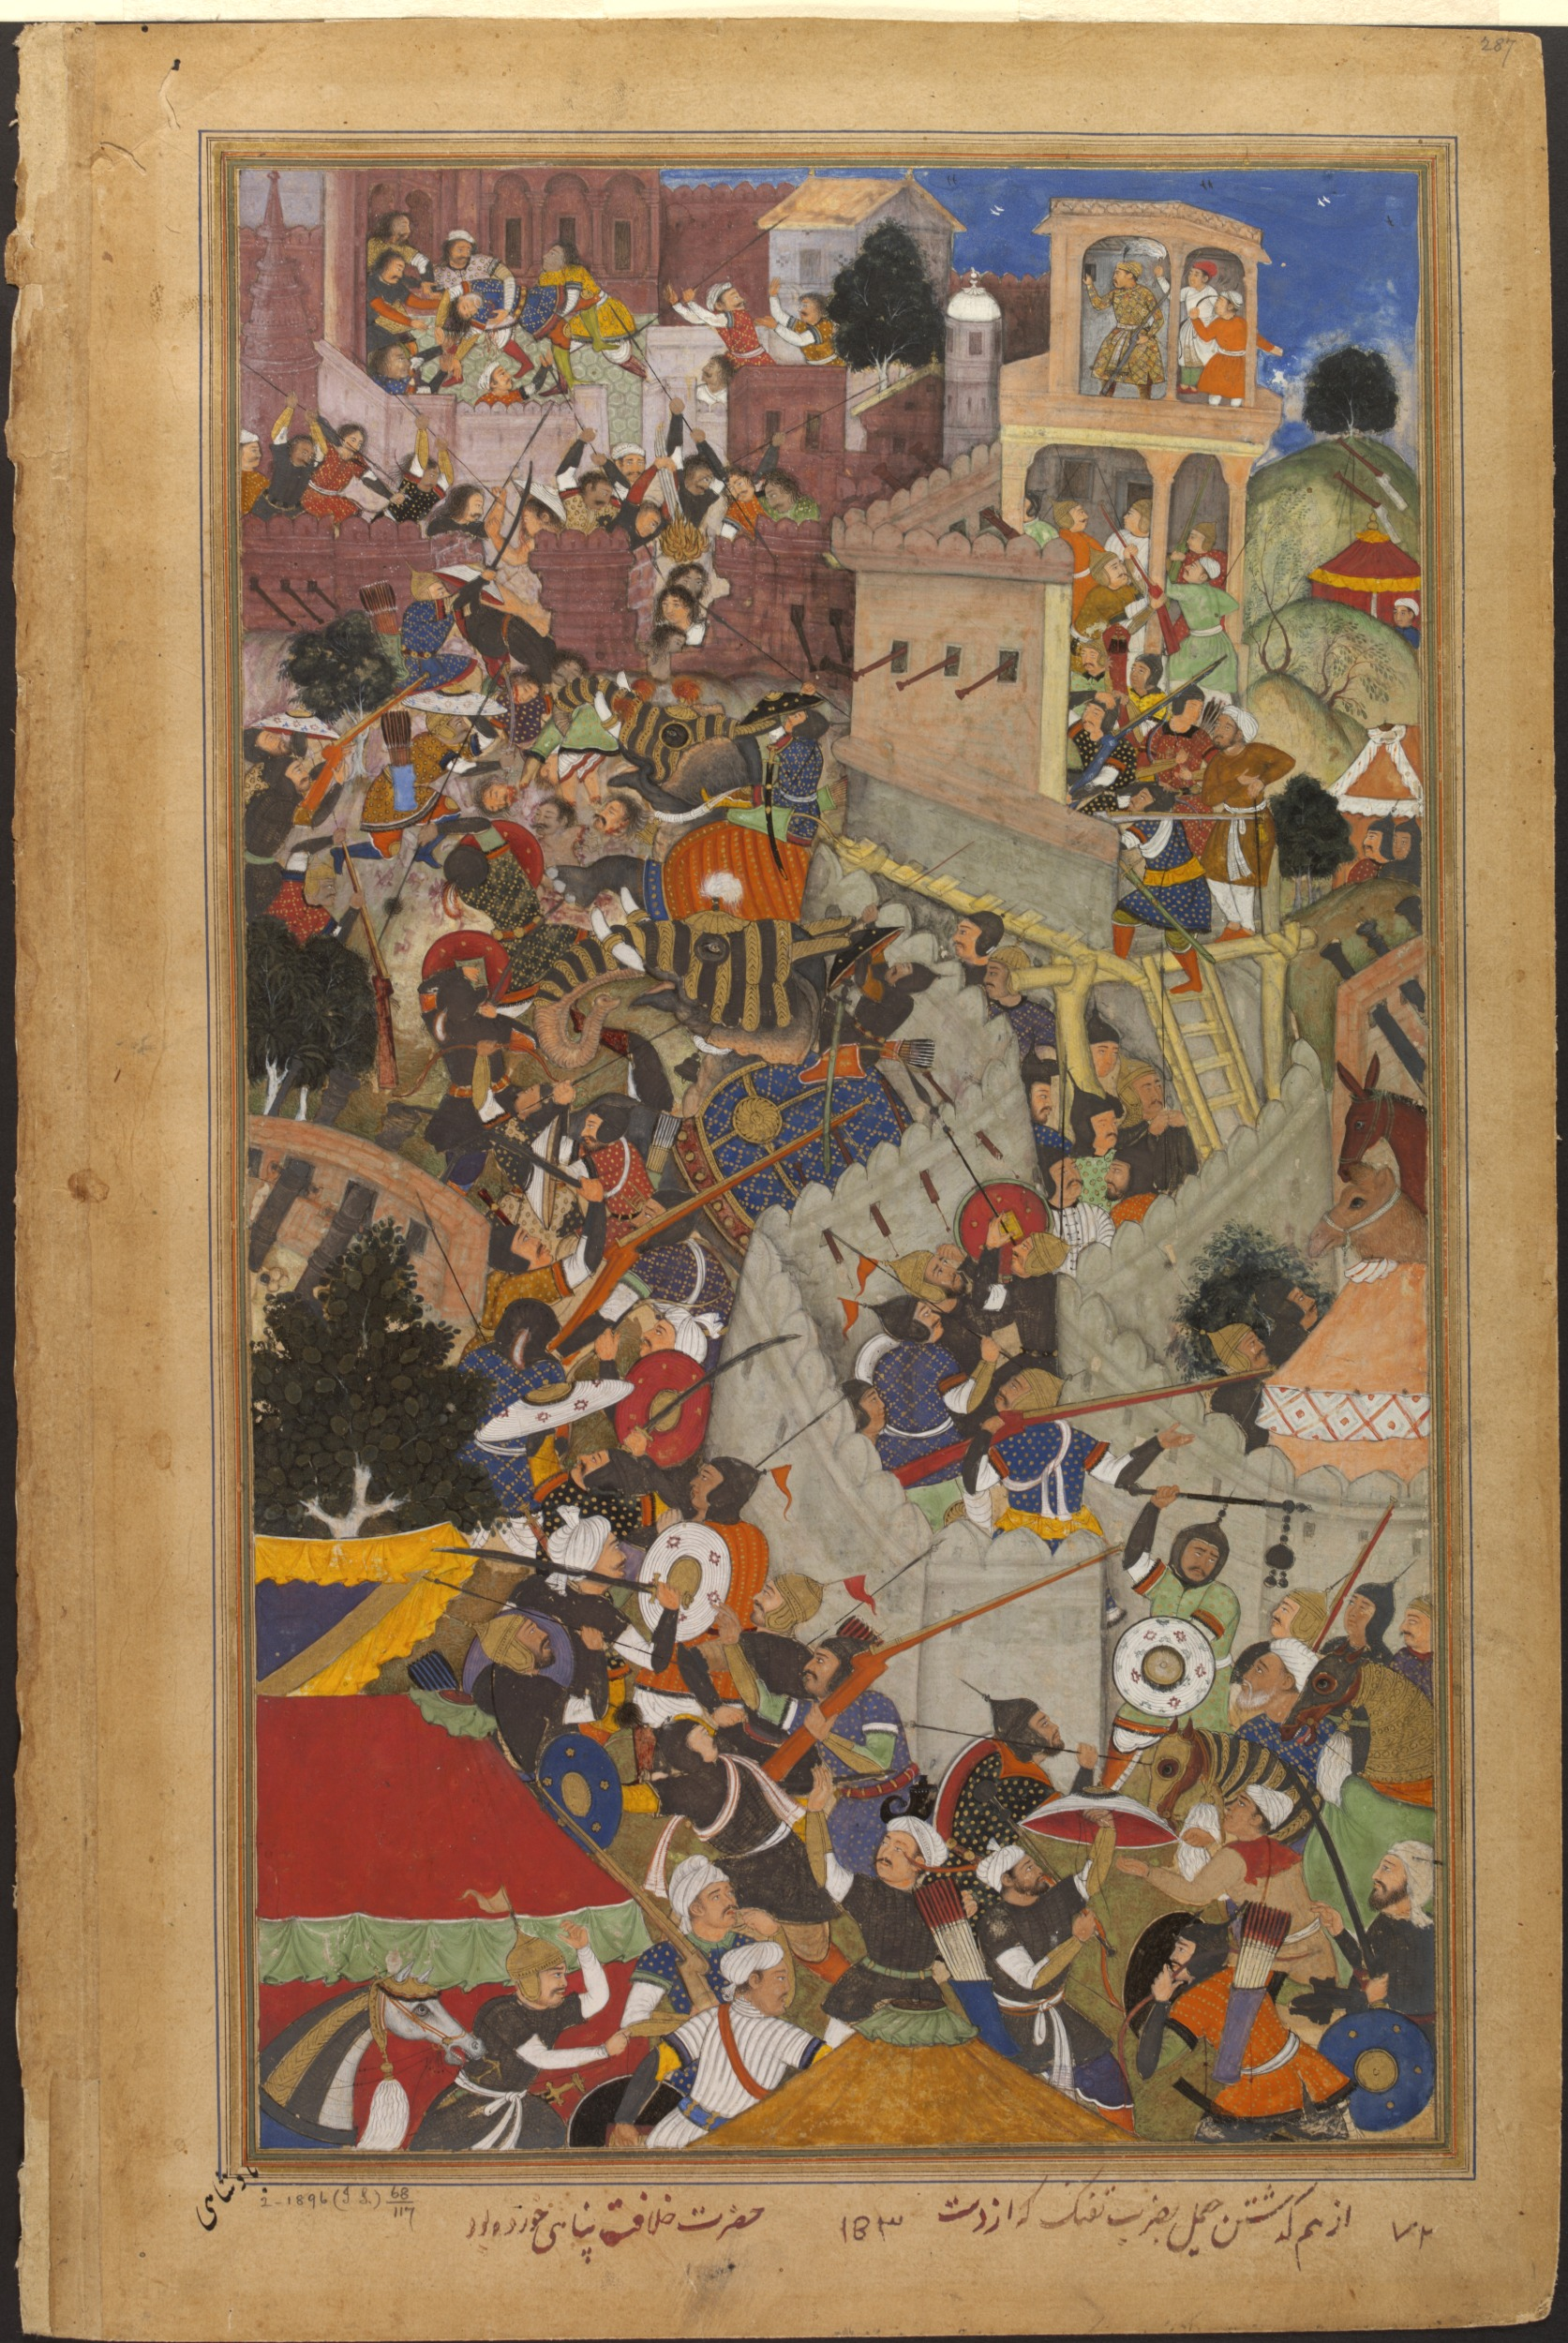 The ruler of the Mughal Emperor Akbar shoots Rajput leader during the siege of Chittorgarh.